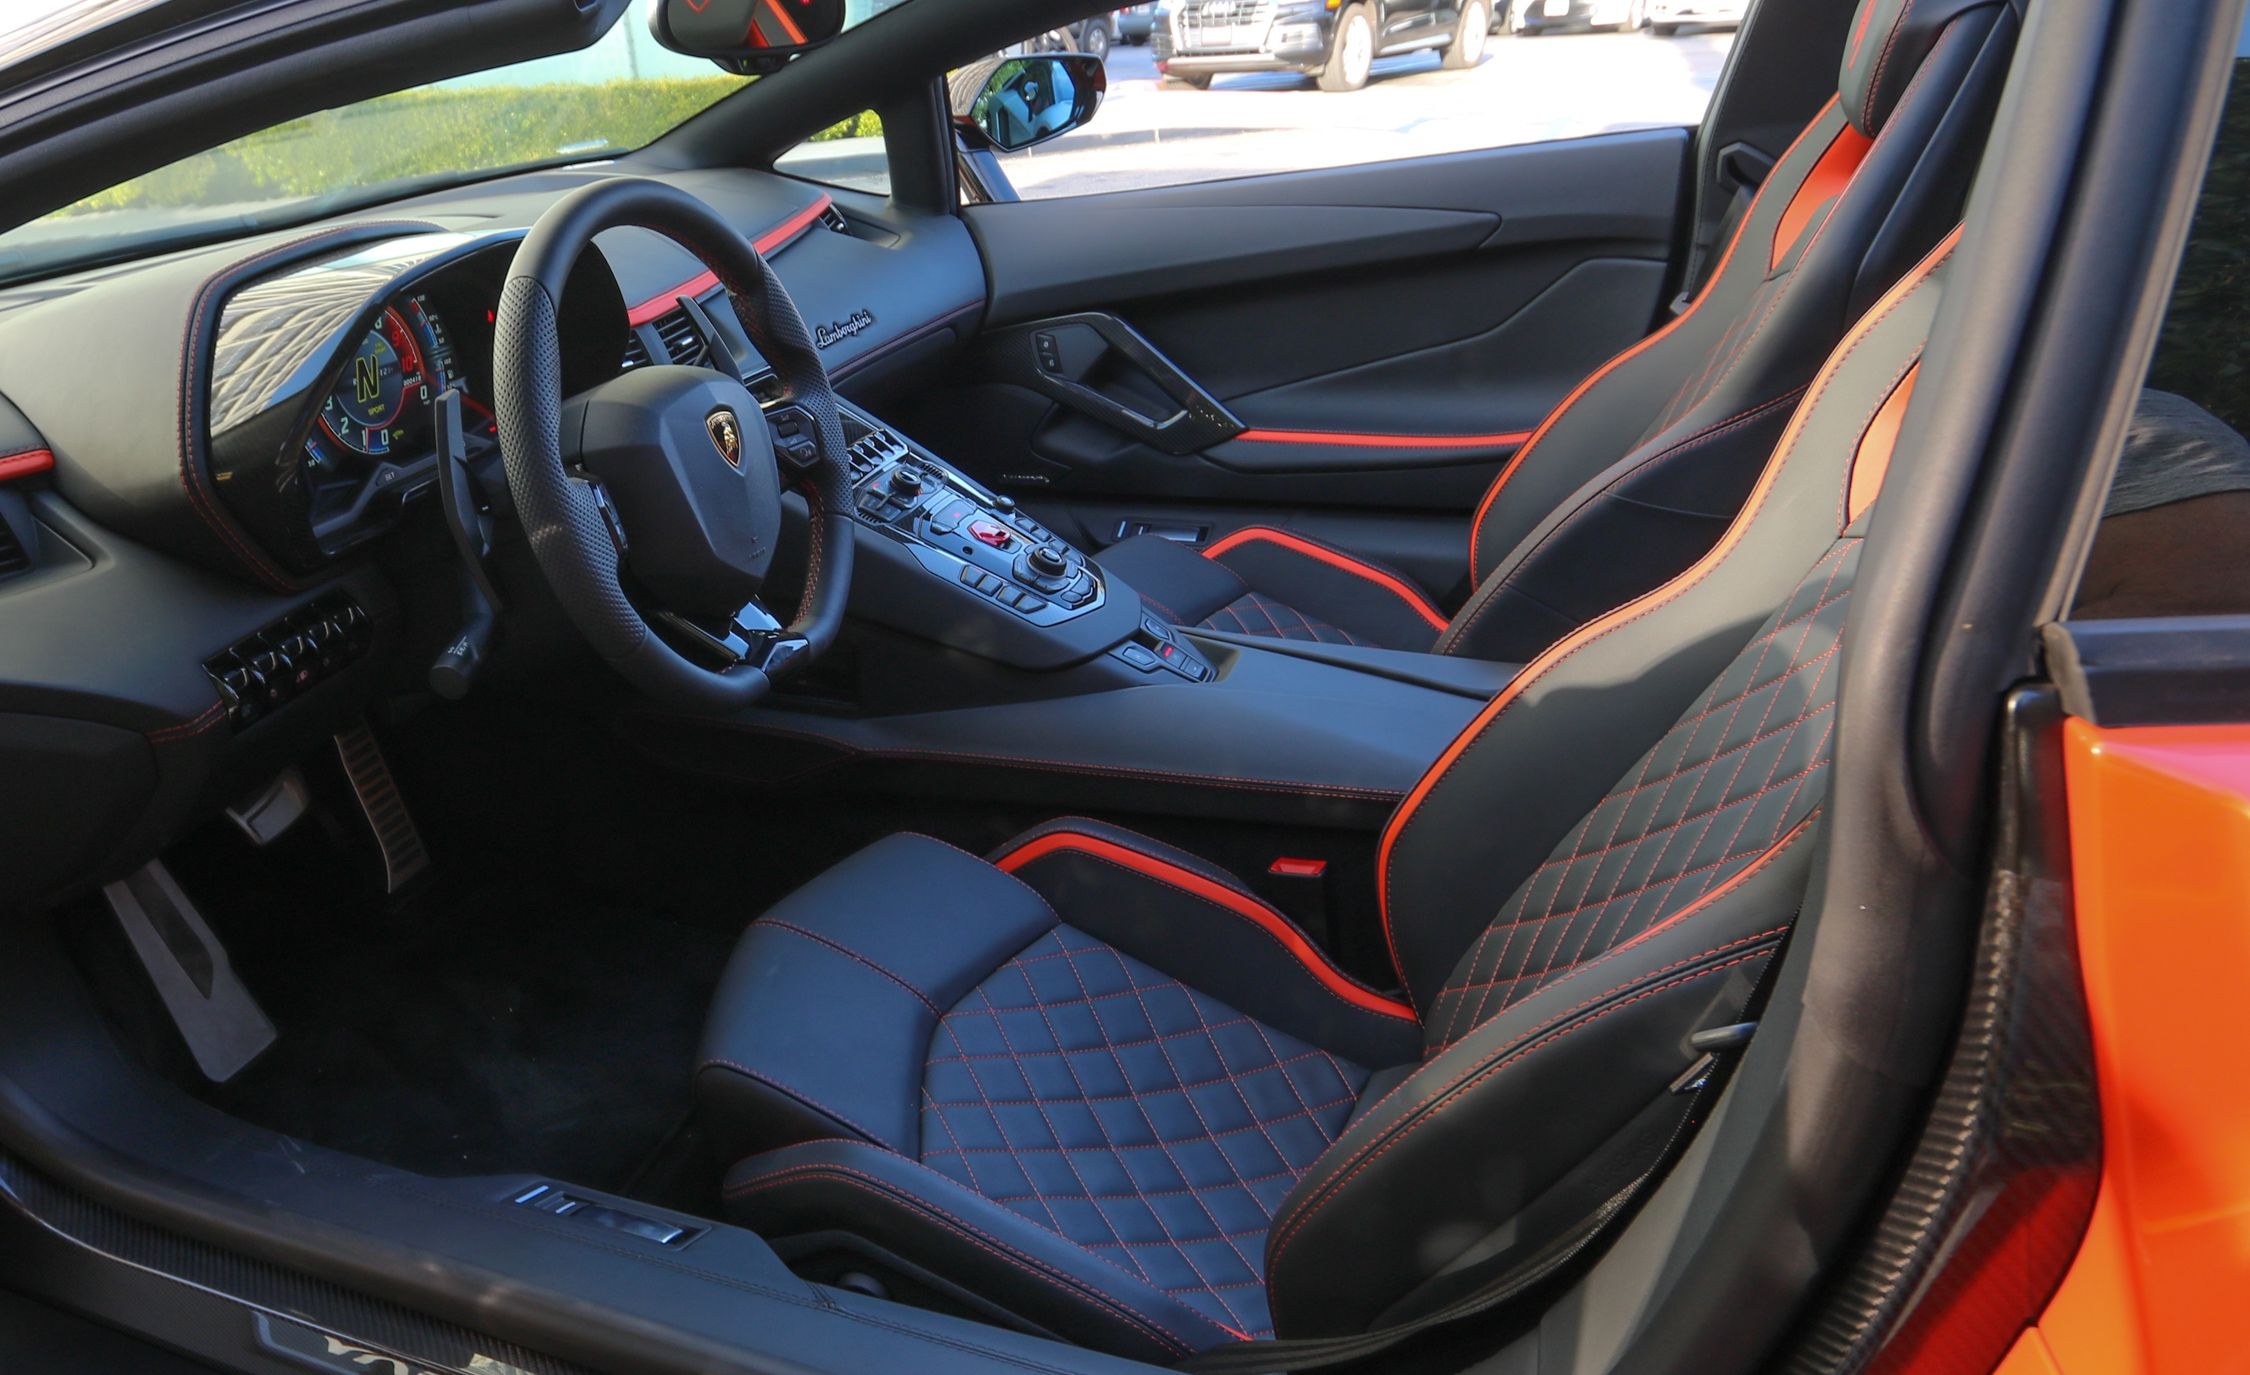 2018 Lamborghini Aventador S Roadster Interior Seats Wallpaper 41